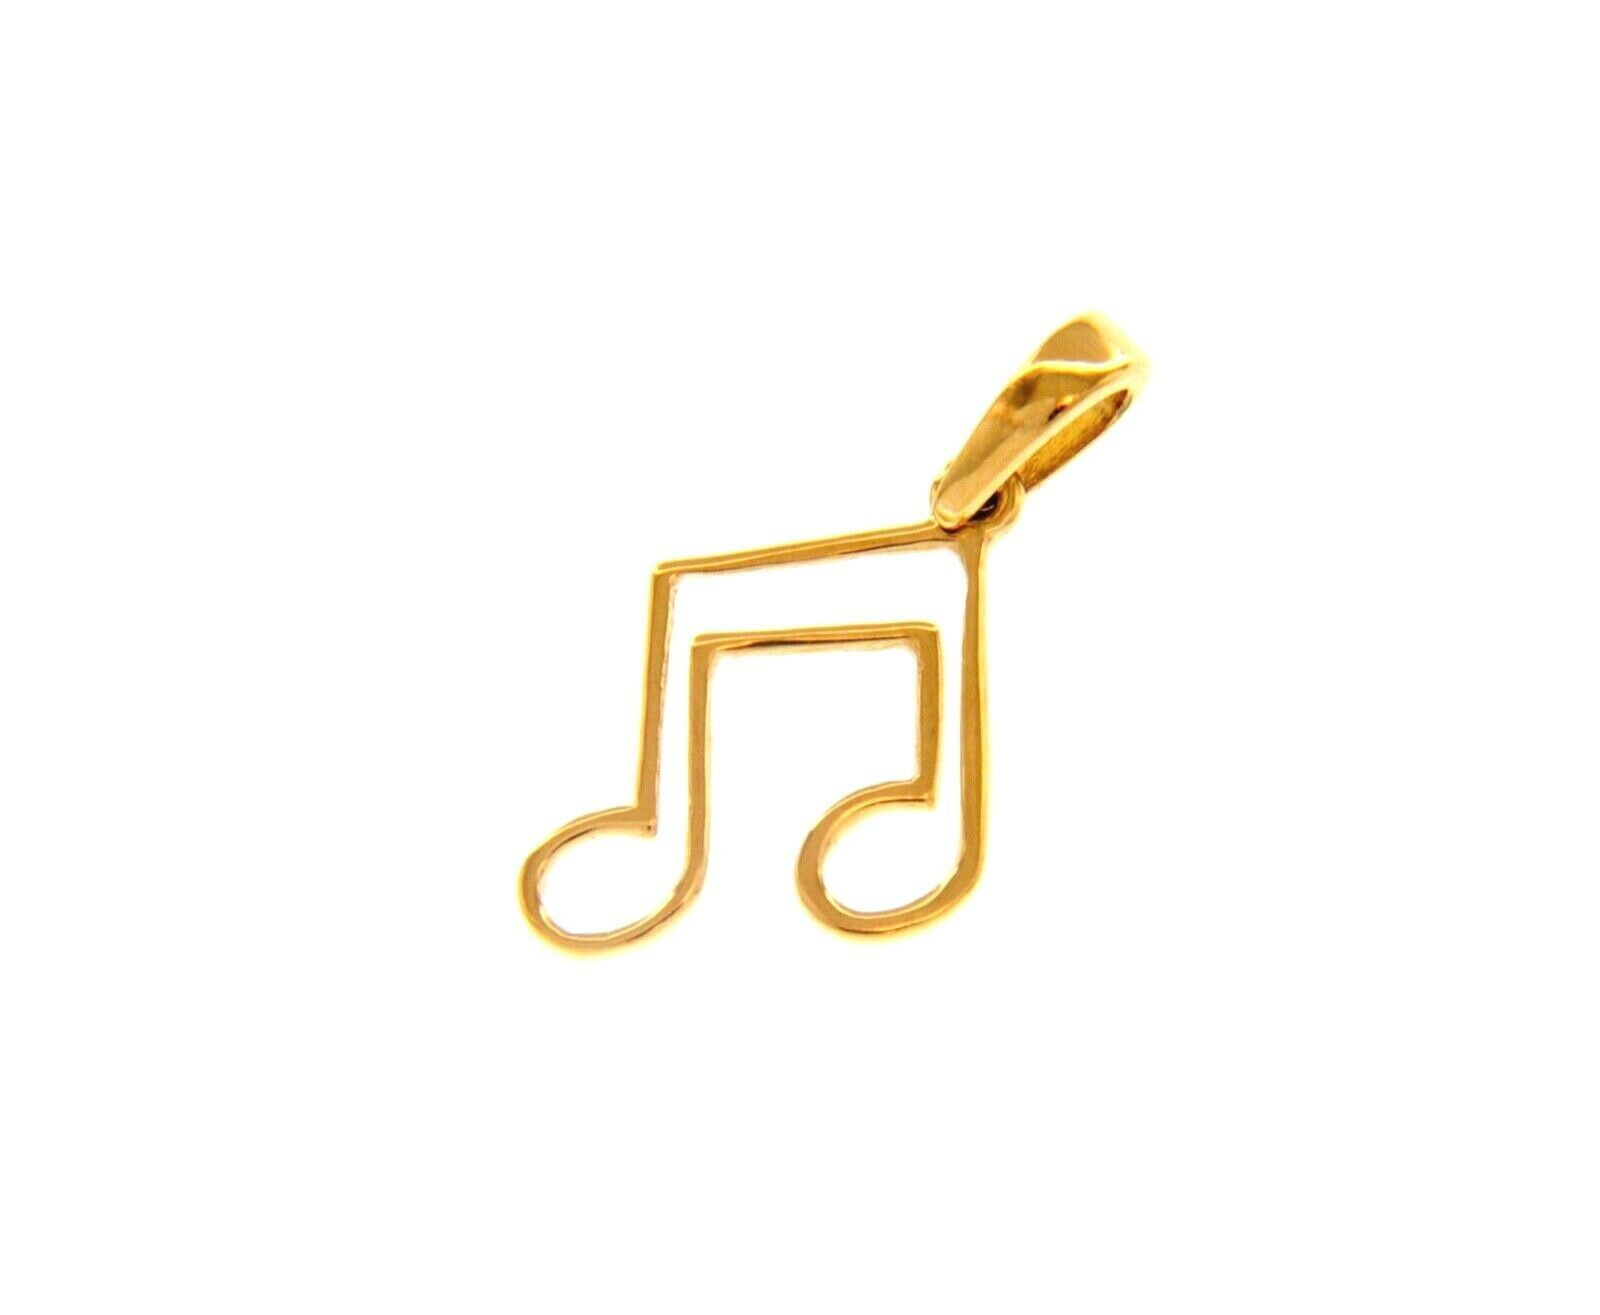 "18K YELLOW GOLD PENDANT SMALL MUSICAL NOTE 11mm 0.43"", MADE IN ITALY"